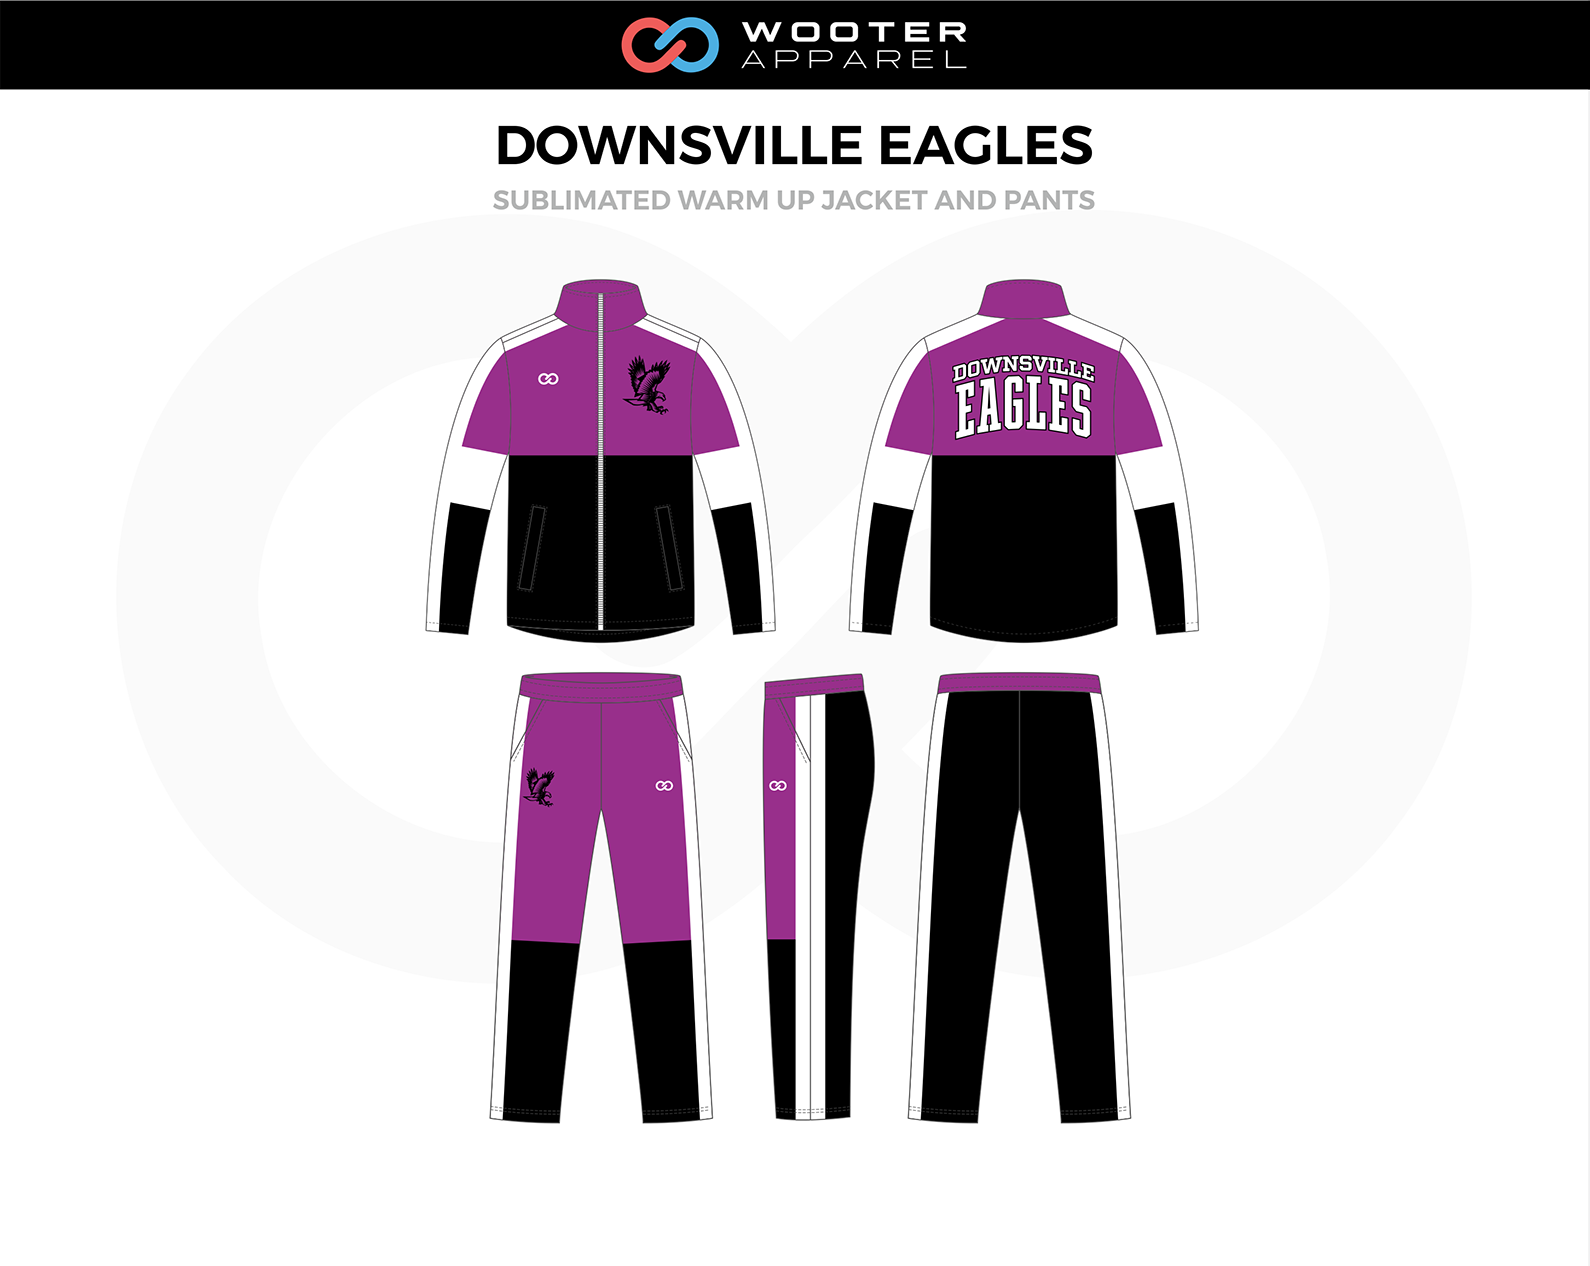 01_Downsville Eagles.png